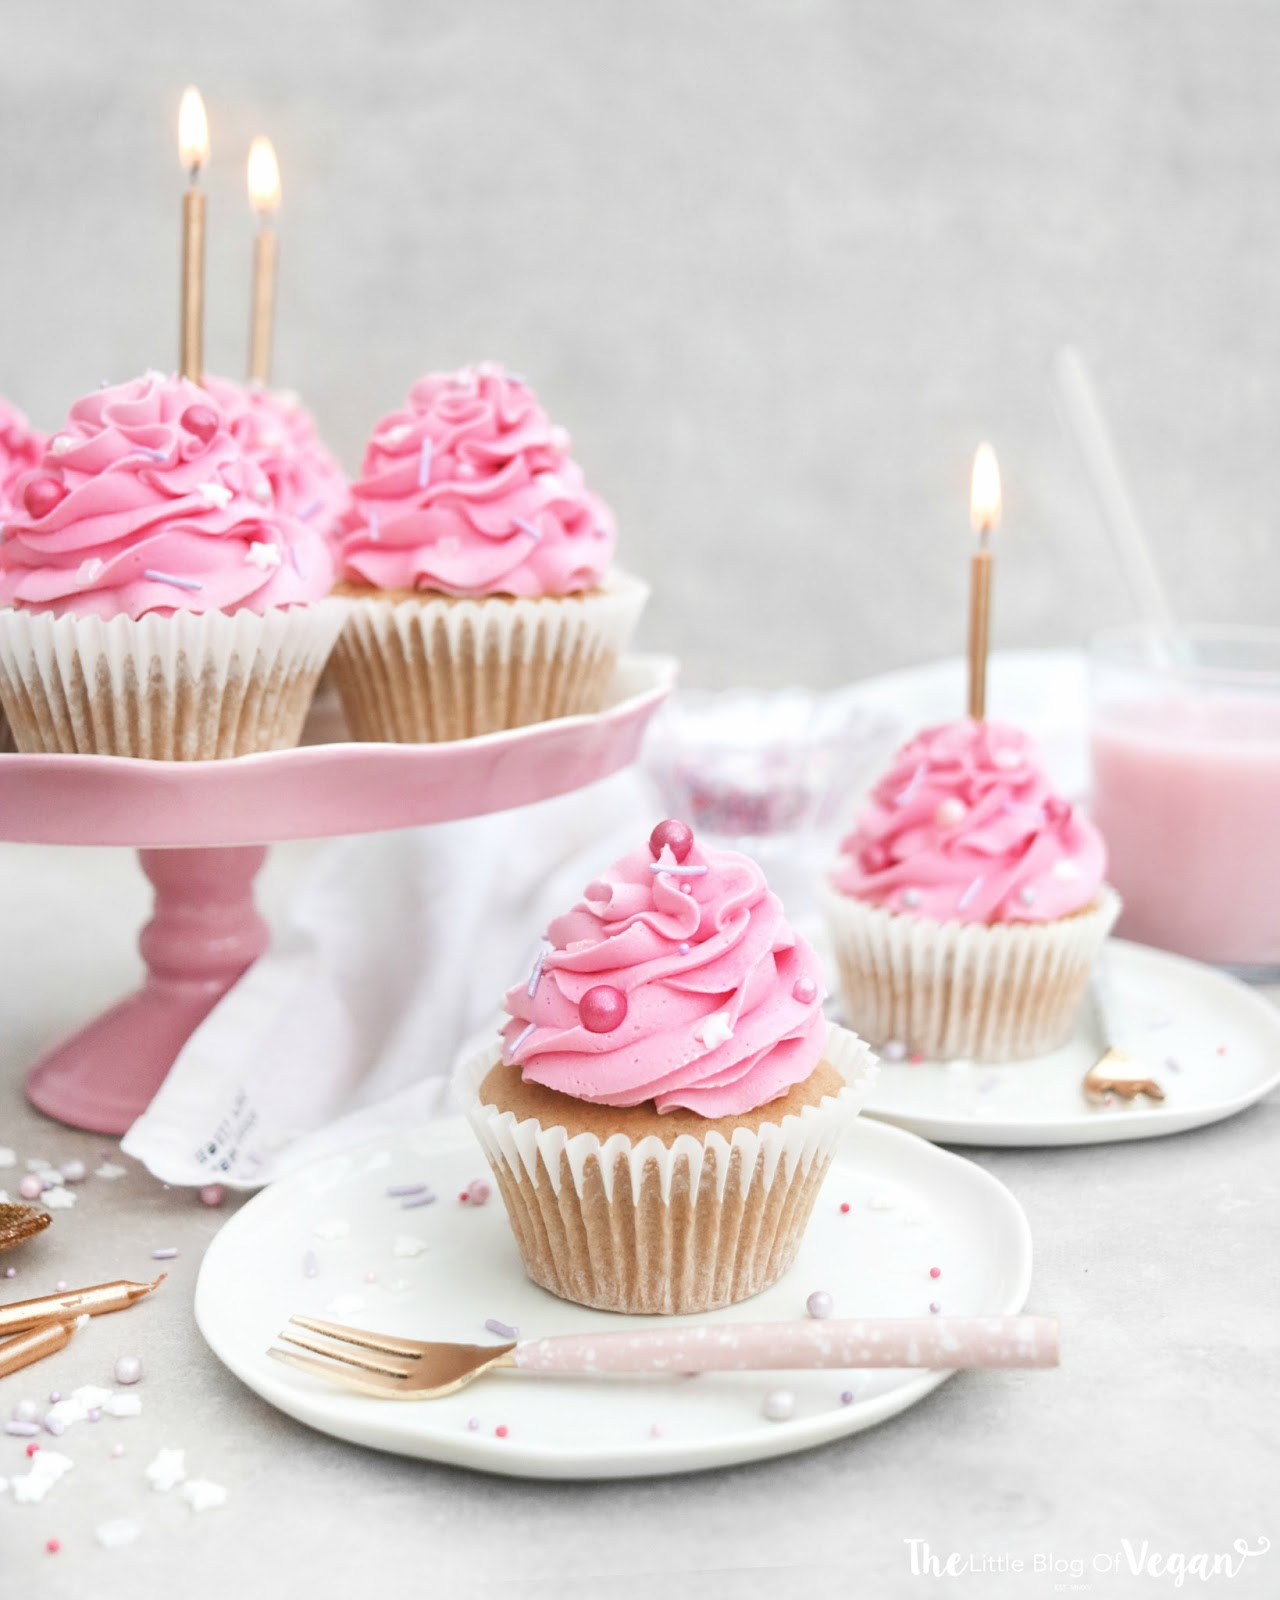 Outstanding Birthday Cake Cupcakes Recipe The Little Blog Of Vegan Funny Birthday Cards Online Sheoxdamsfinfo